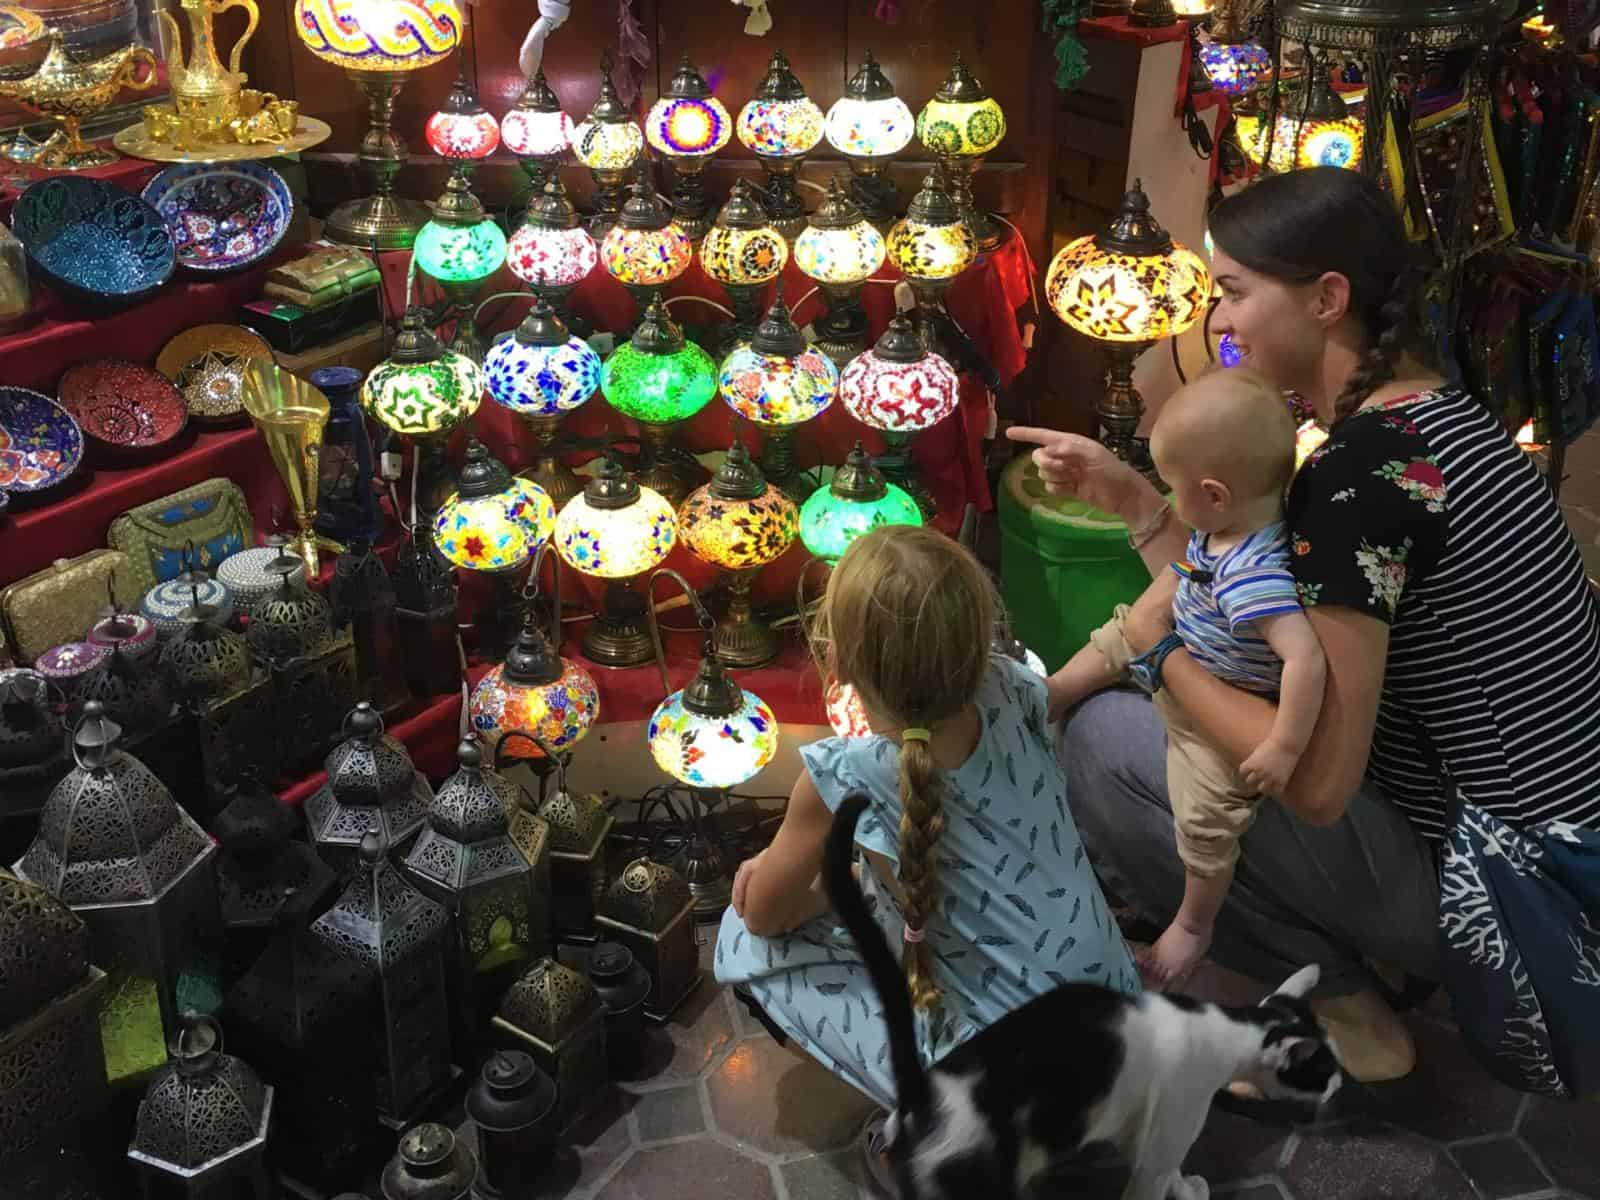 Visiting the Souq Dubai with kids